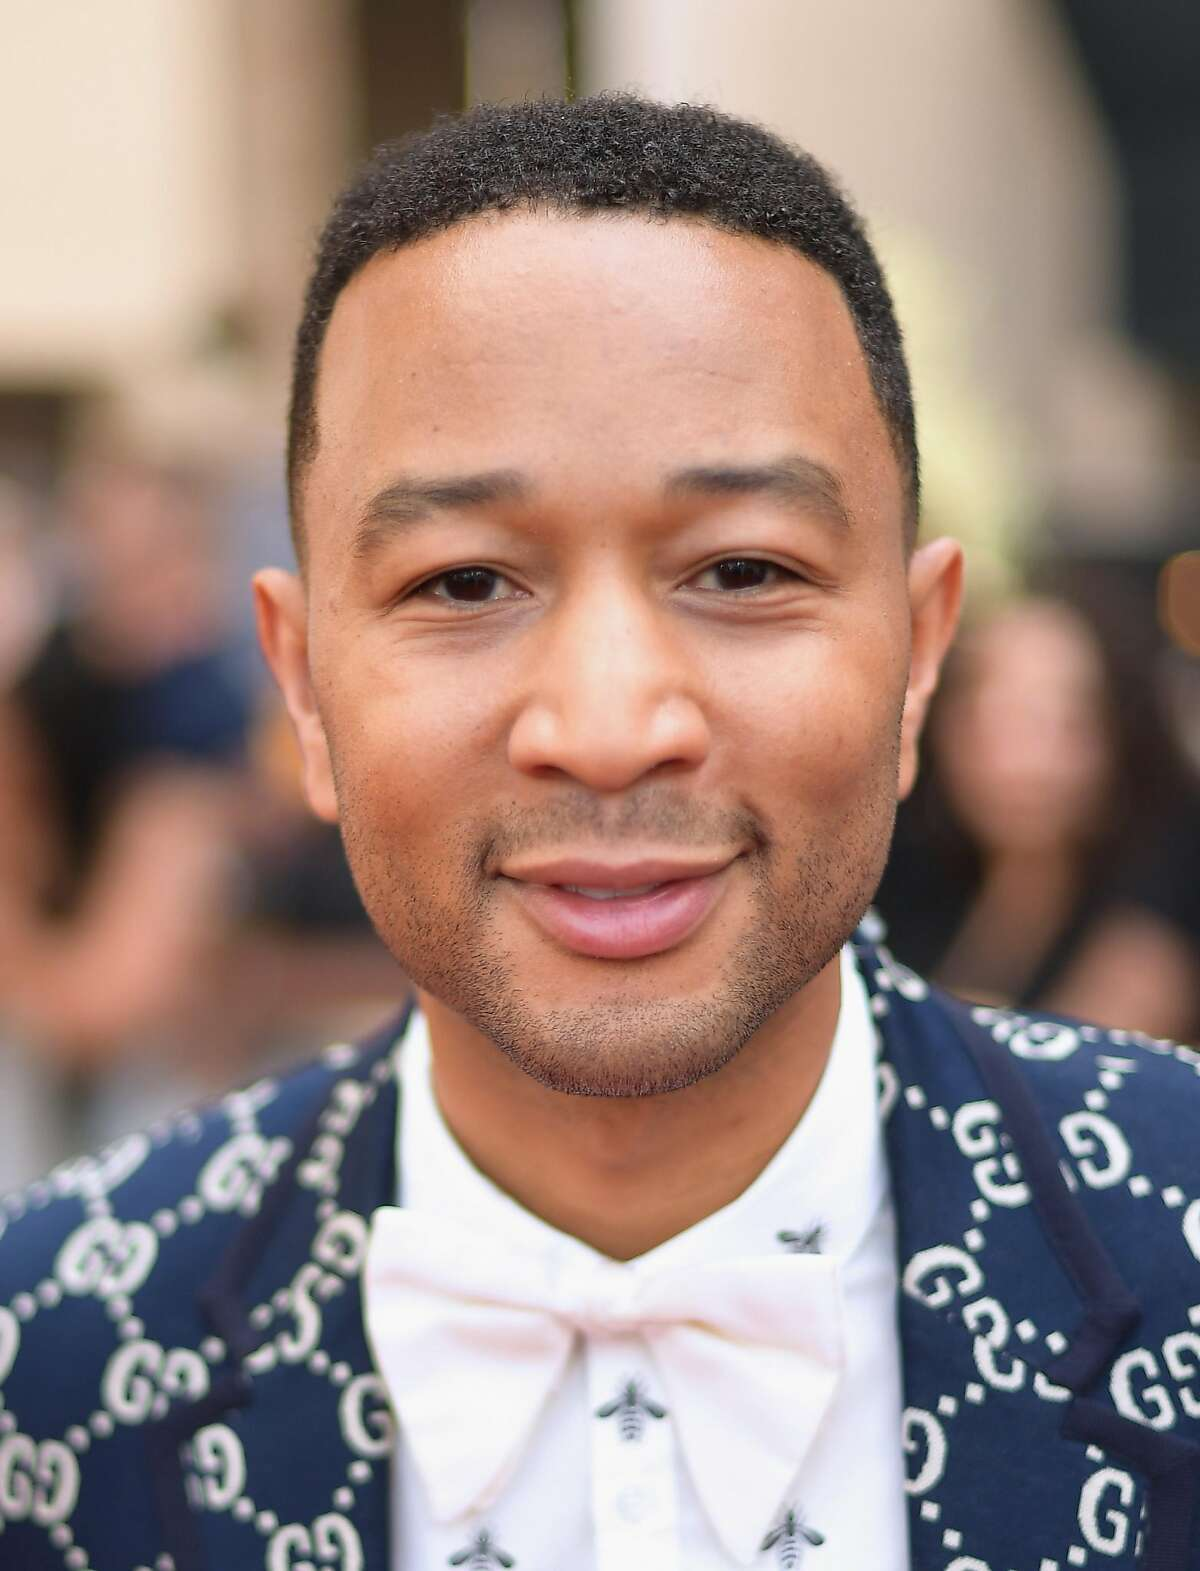 LAS VEGAS, NV - MAY 20: Recording artist John Legend attends the 2018 Billboard Music Awards at MGM Grand Garden Arena on May 20, 2018 in Las Vegas, Nevada. (Photo by Matt Winkelmeyer/Getty Images for dcp)